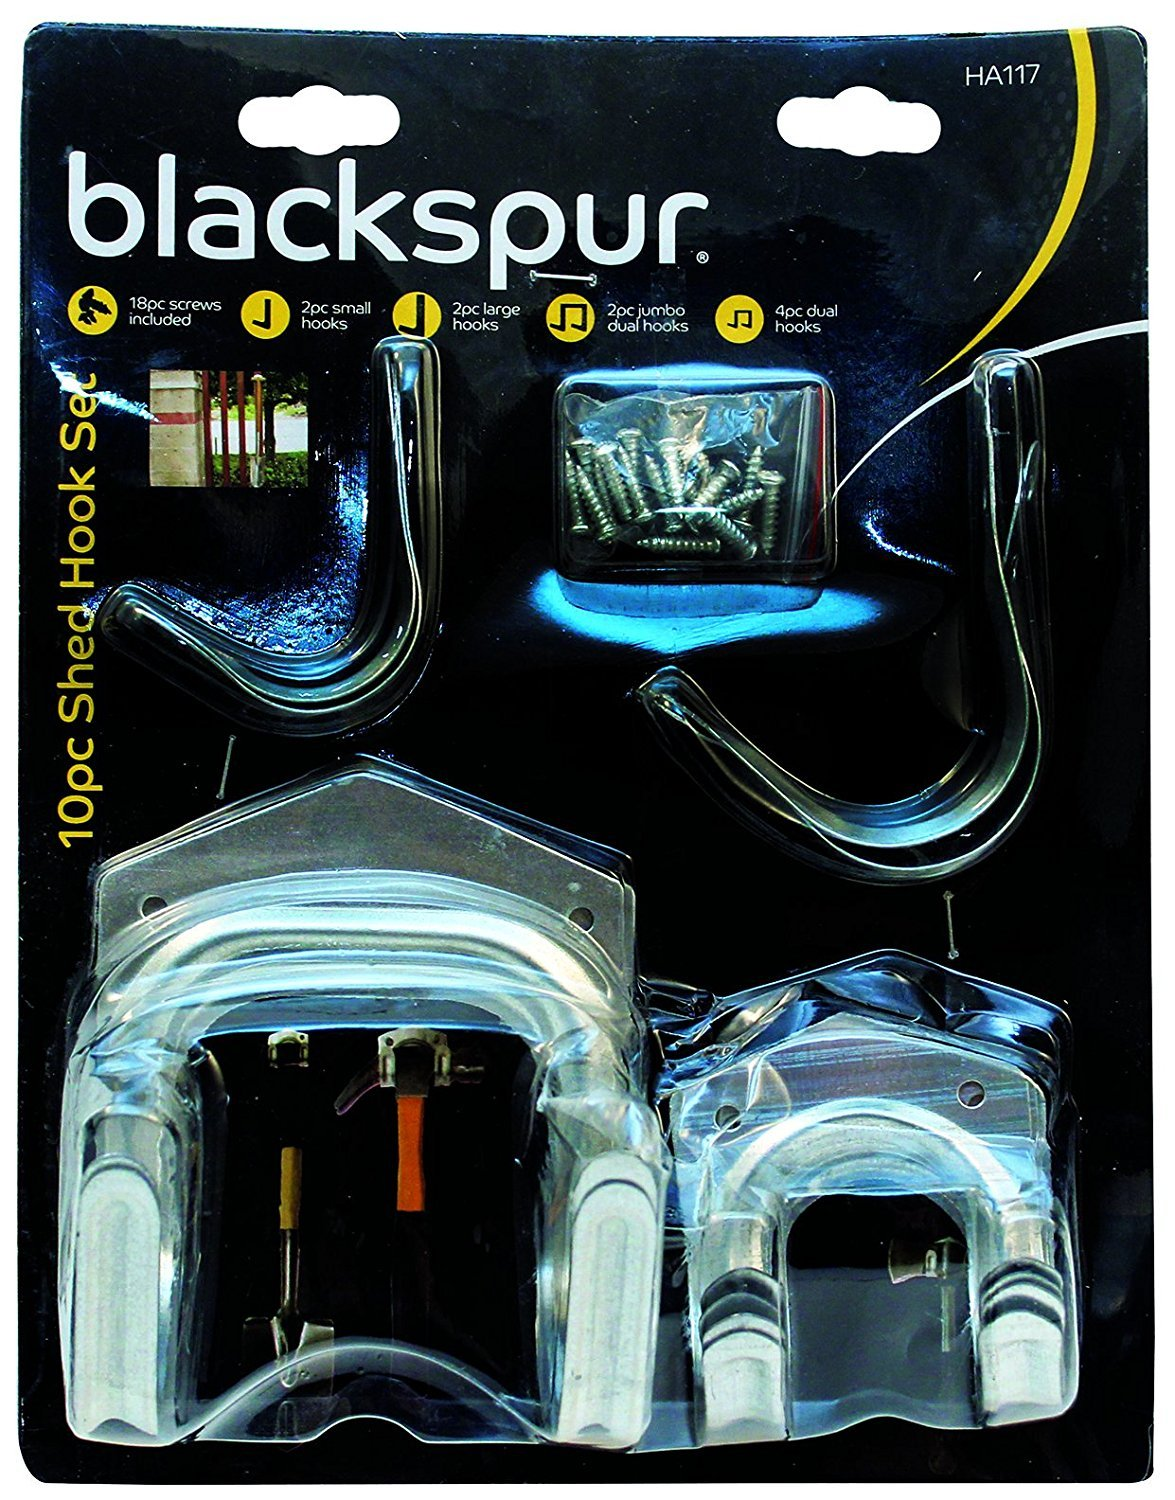 Blackspur Shed Hook Set - 10 Pieces BB-HA117 Hamble Distribution ltd